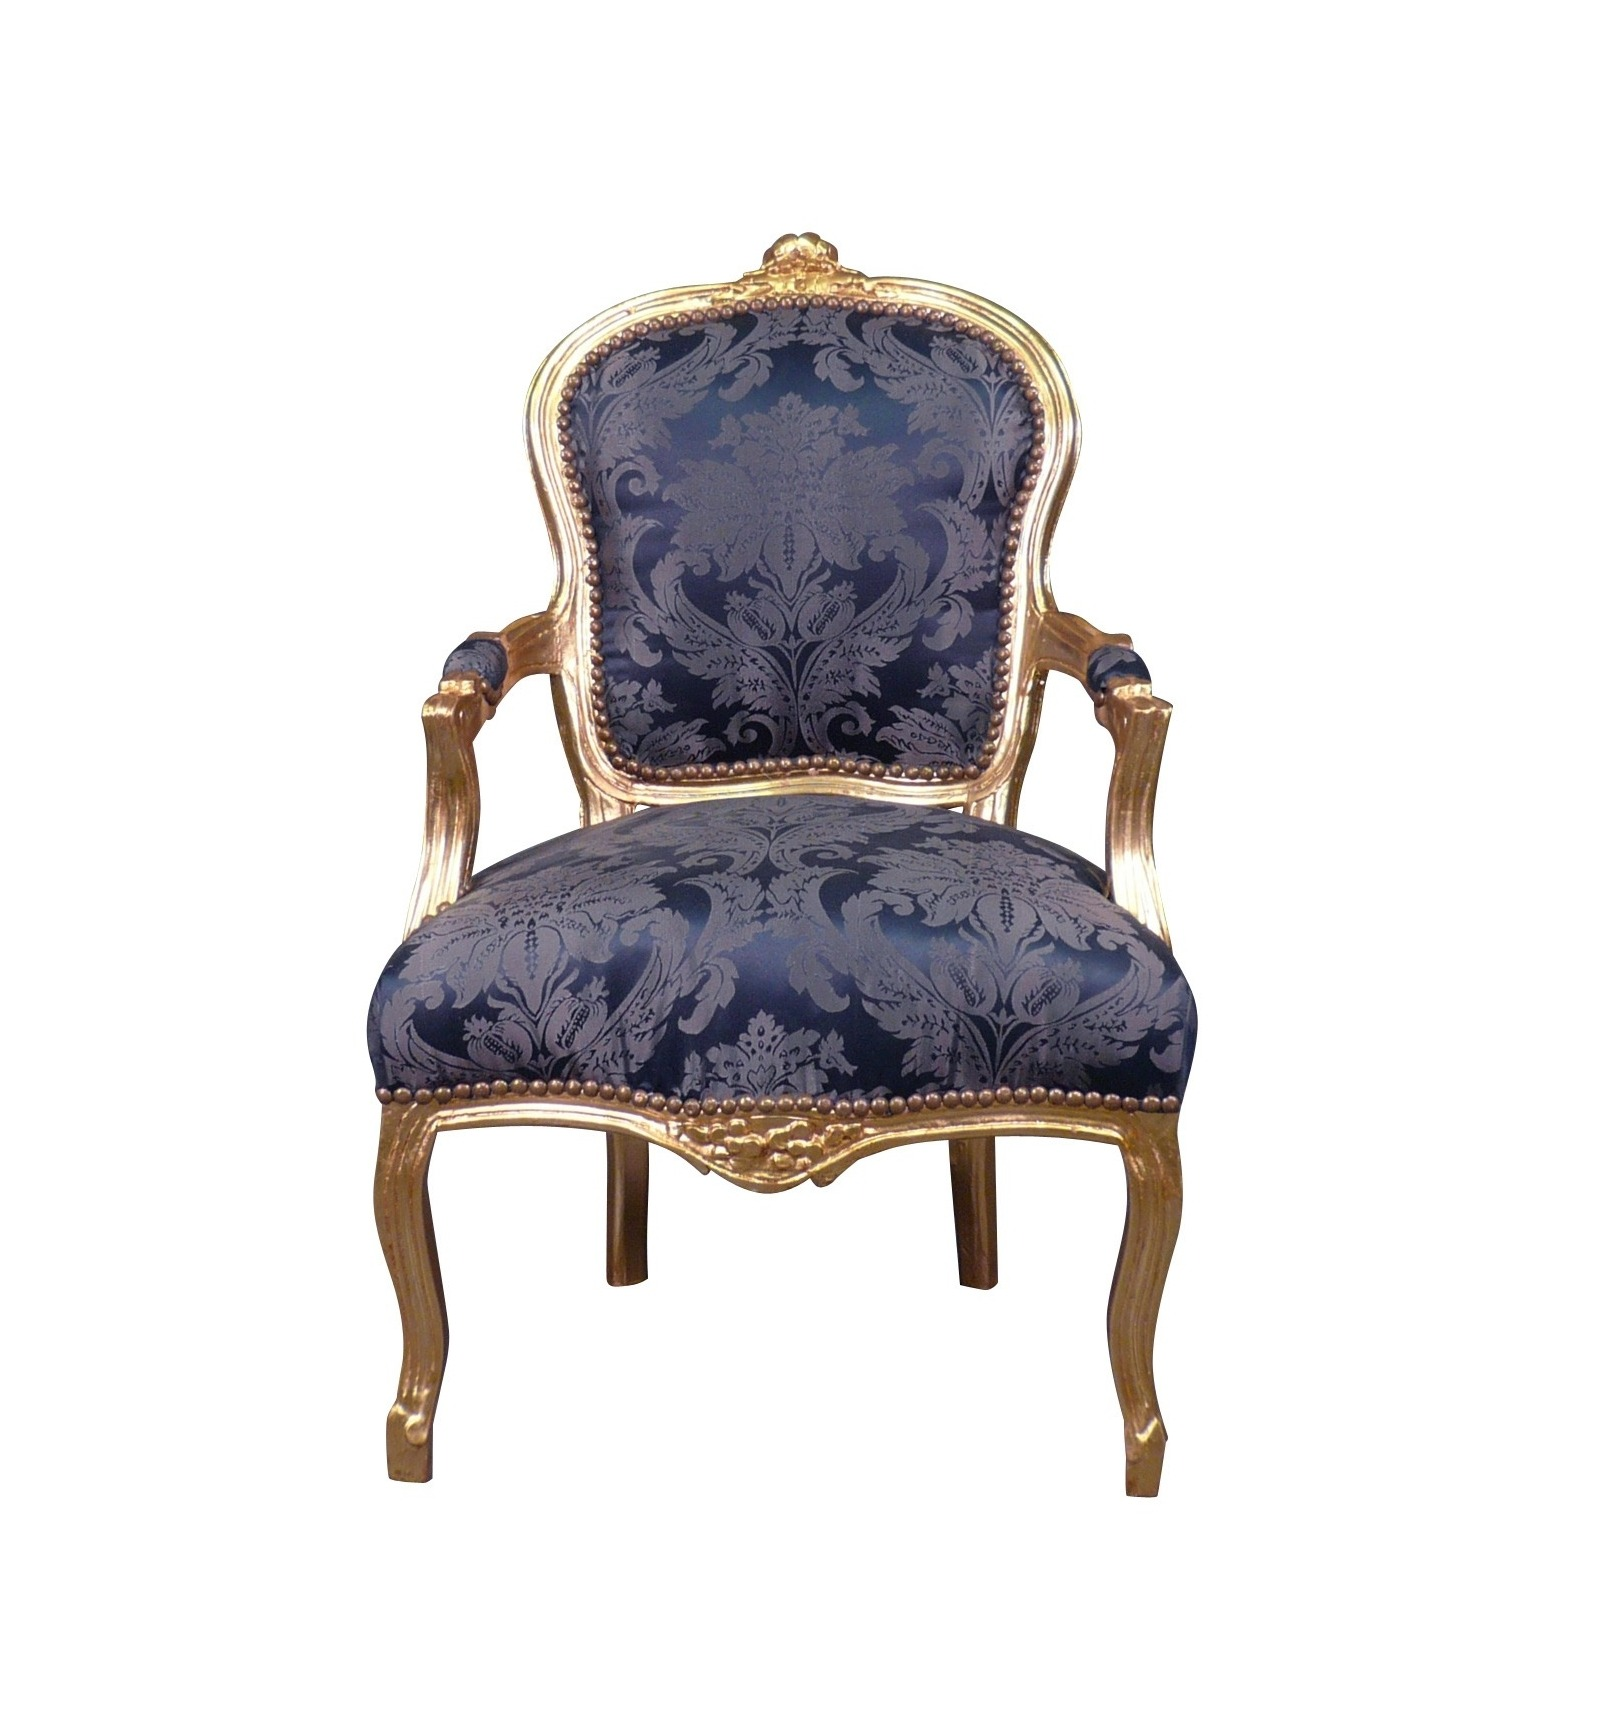 Möbel Sessel Louis Xv Sessel Royal Blue